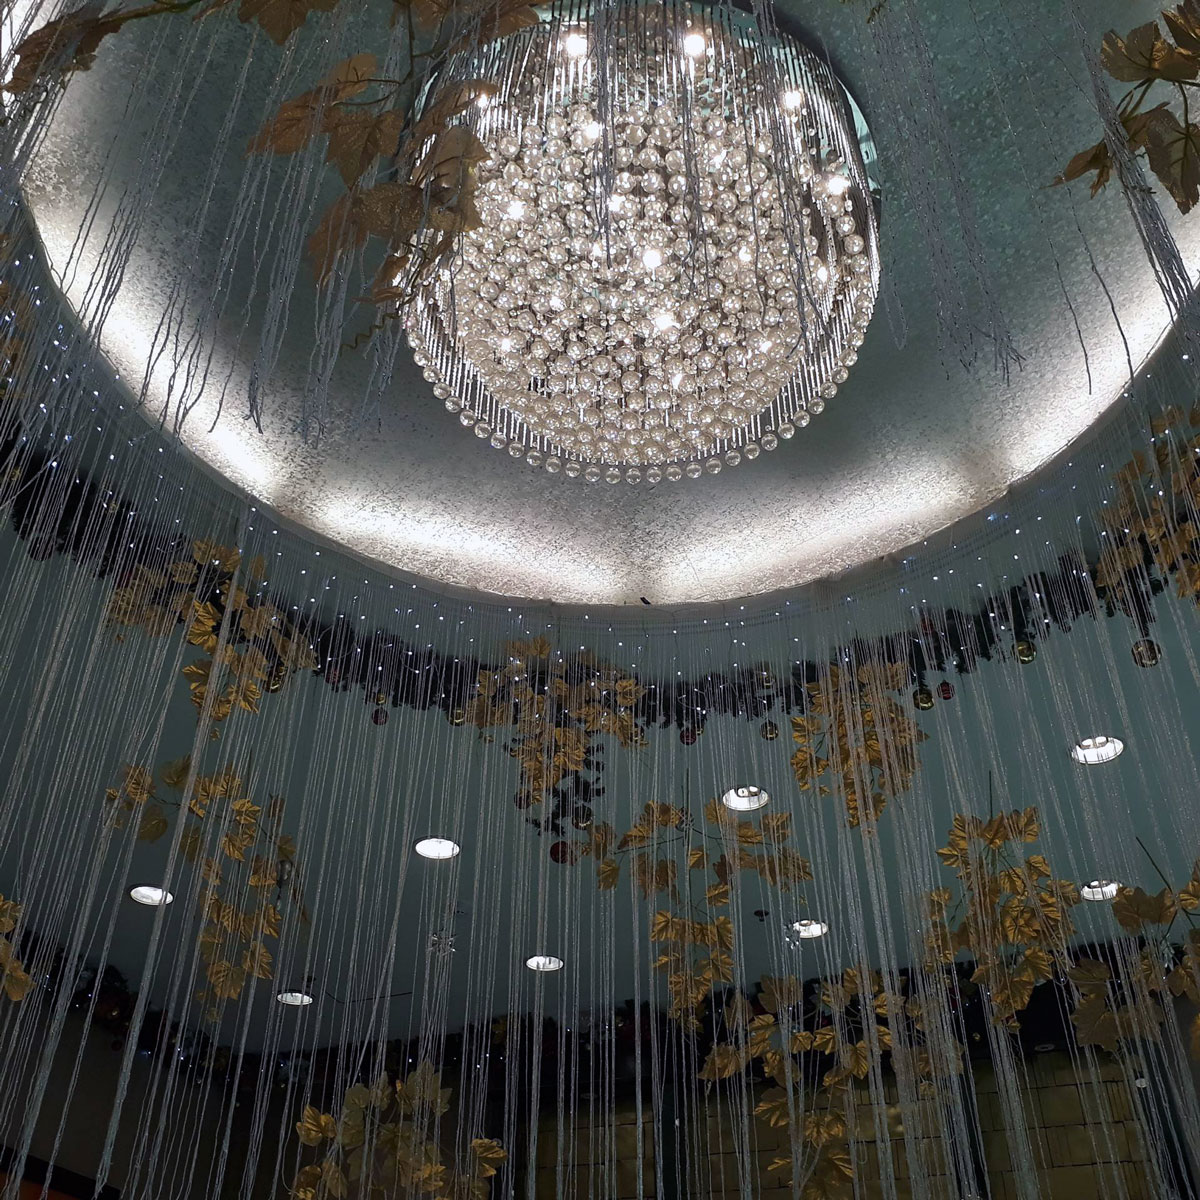 Grand chandelier naga city guide the concourse convention center grand chandelier aloadofball Images